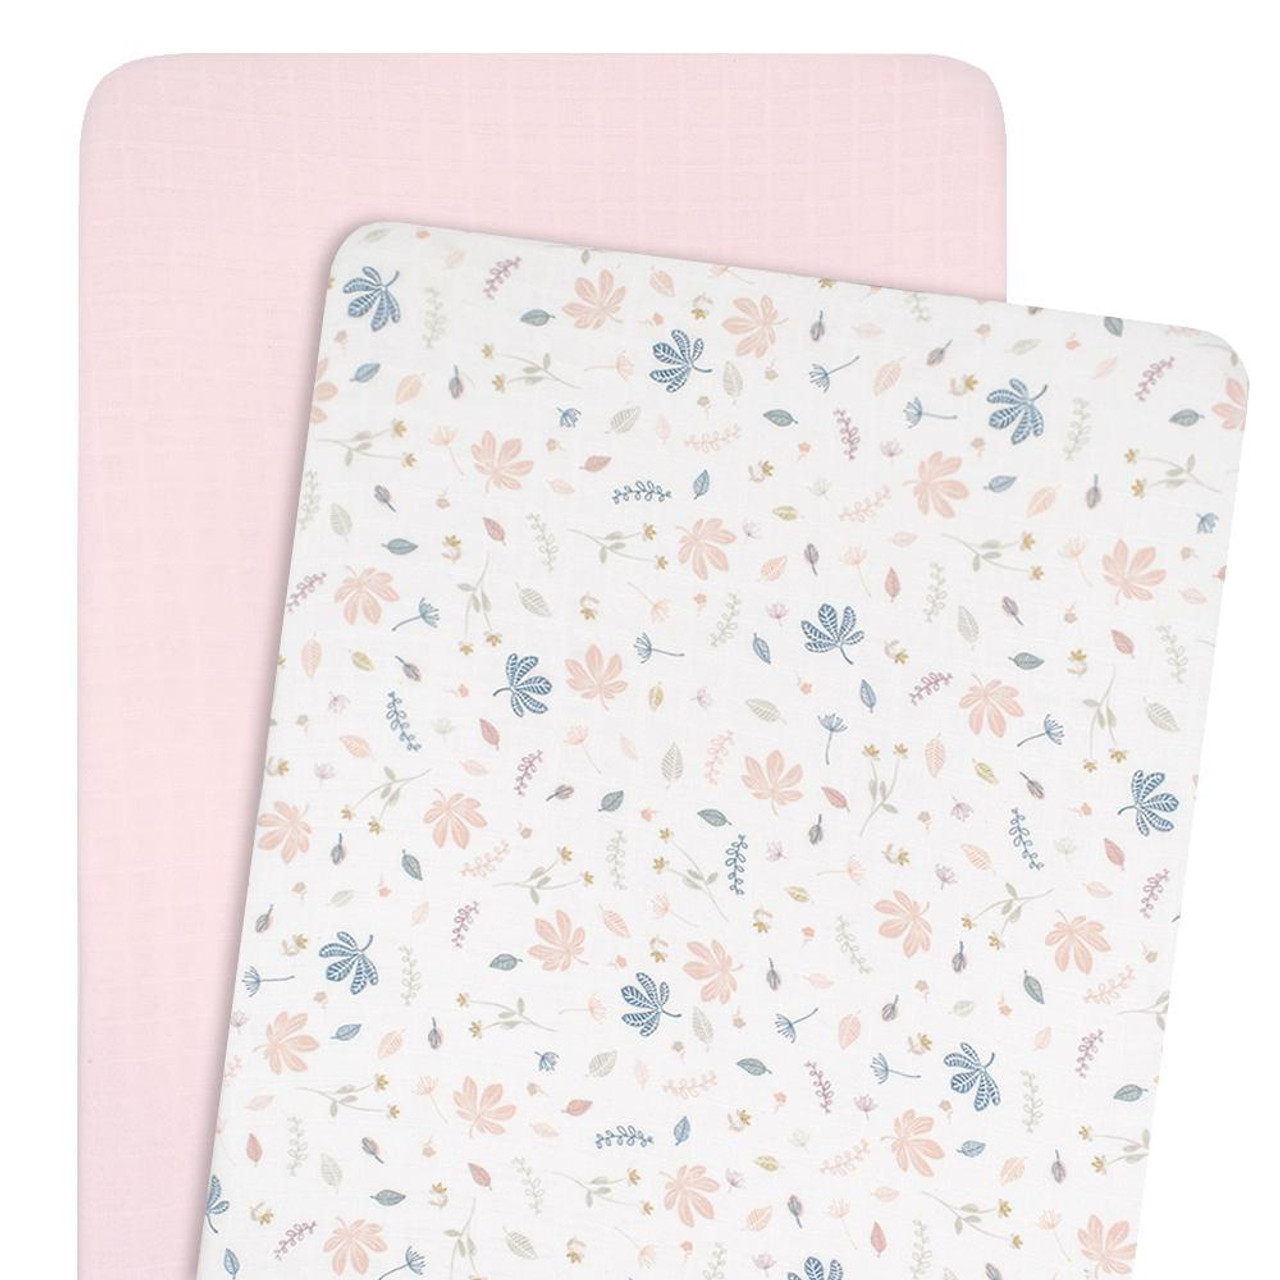 Living Textiles Organic Cotton Muslin Co-Sleeper Fitted Sheets 2pk at Baby Barn Discounts Created from 2-layers of soft and silky 100% organic cotton muslin they are perfect all year round.